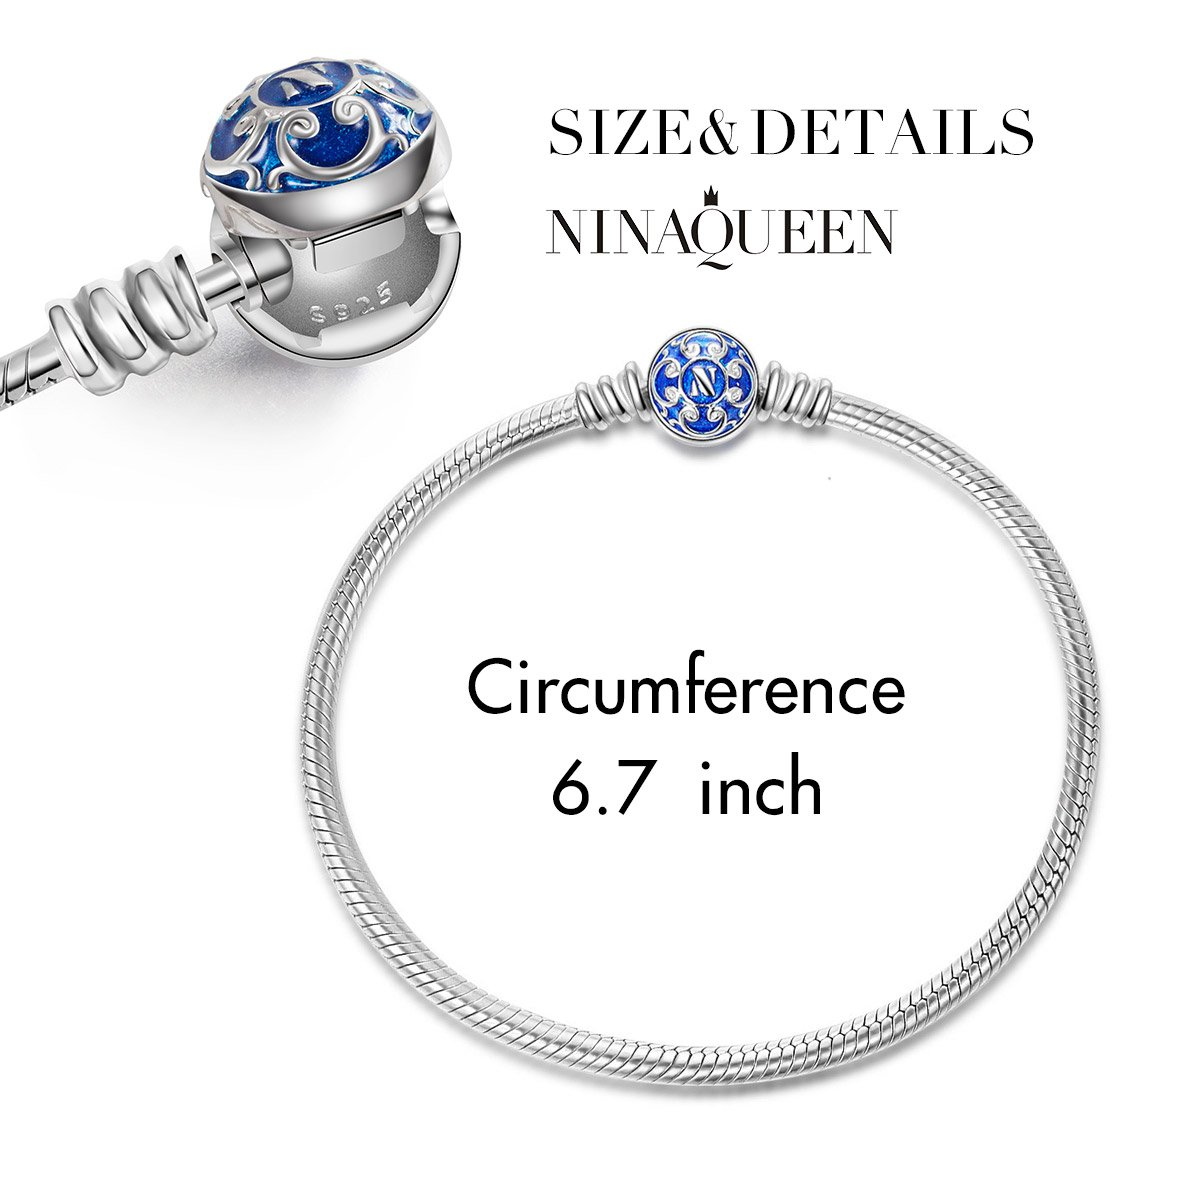 NinaQueen 925 Sterling Silver Snake Chain Pandöra Bracelet for Women with Blue Clasp Charms 6.7 Inches Jewelry Birthday Anniversary Gifts for Her Girlfriend Niece Friends Sisters Daughter Wife Teen Gi by NINAQUEEN (Image #1)